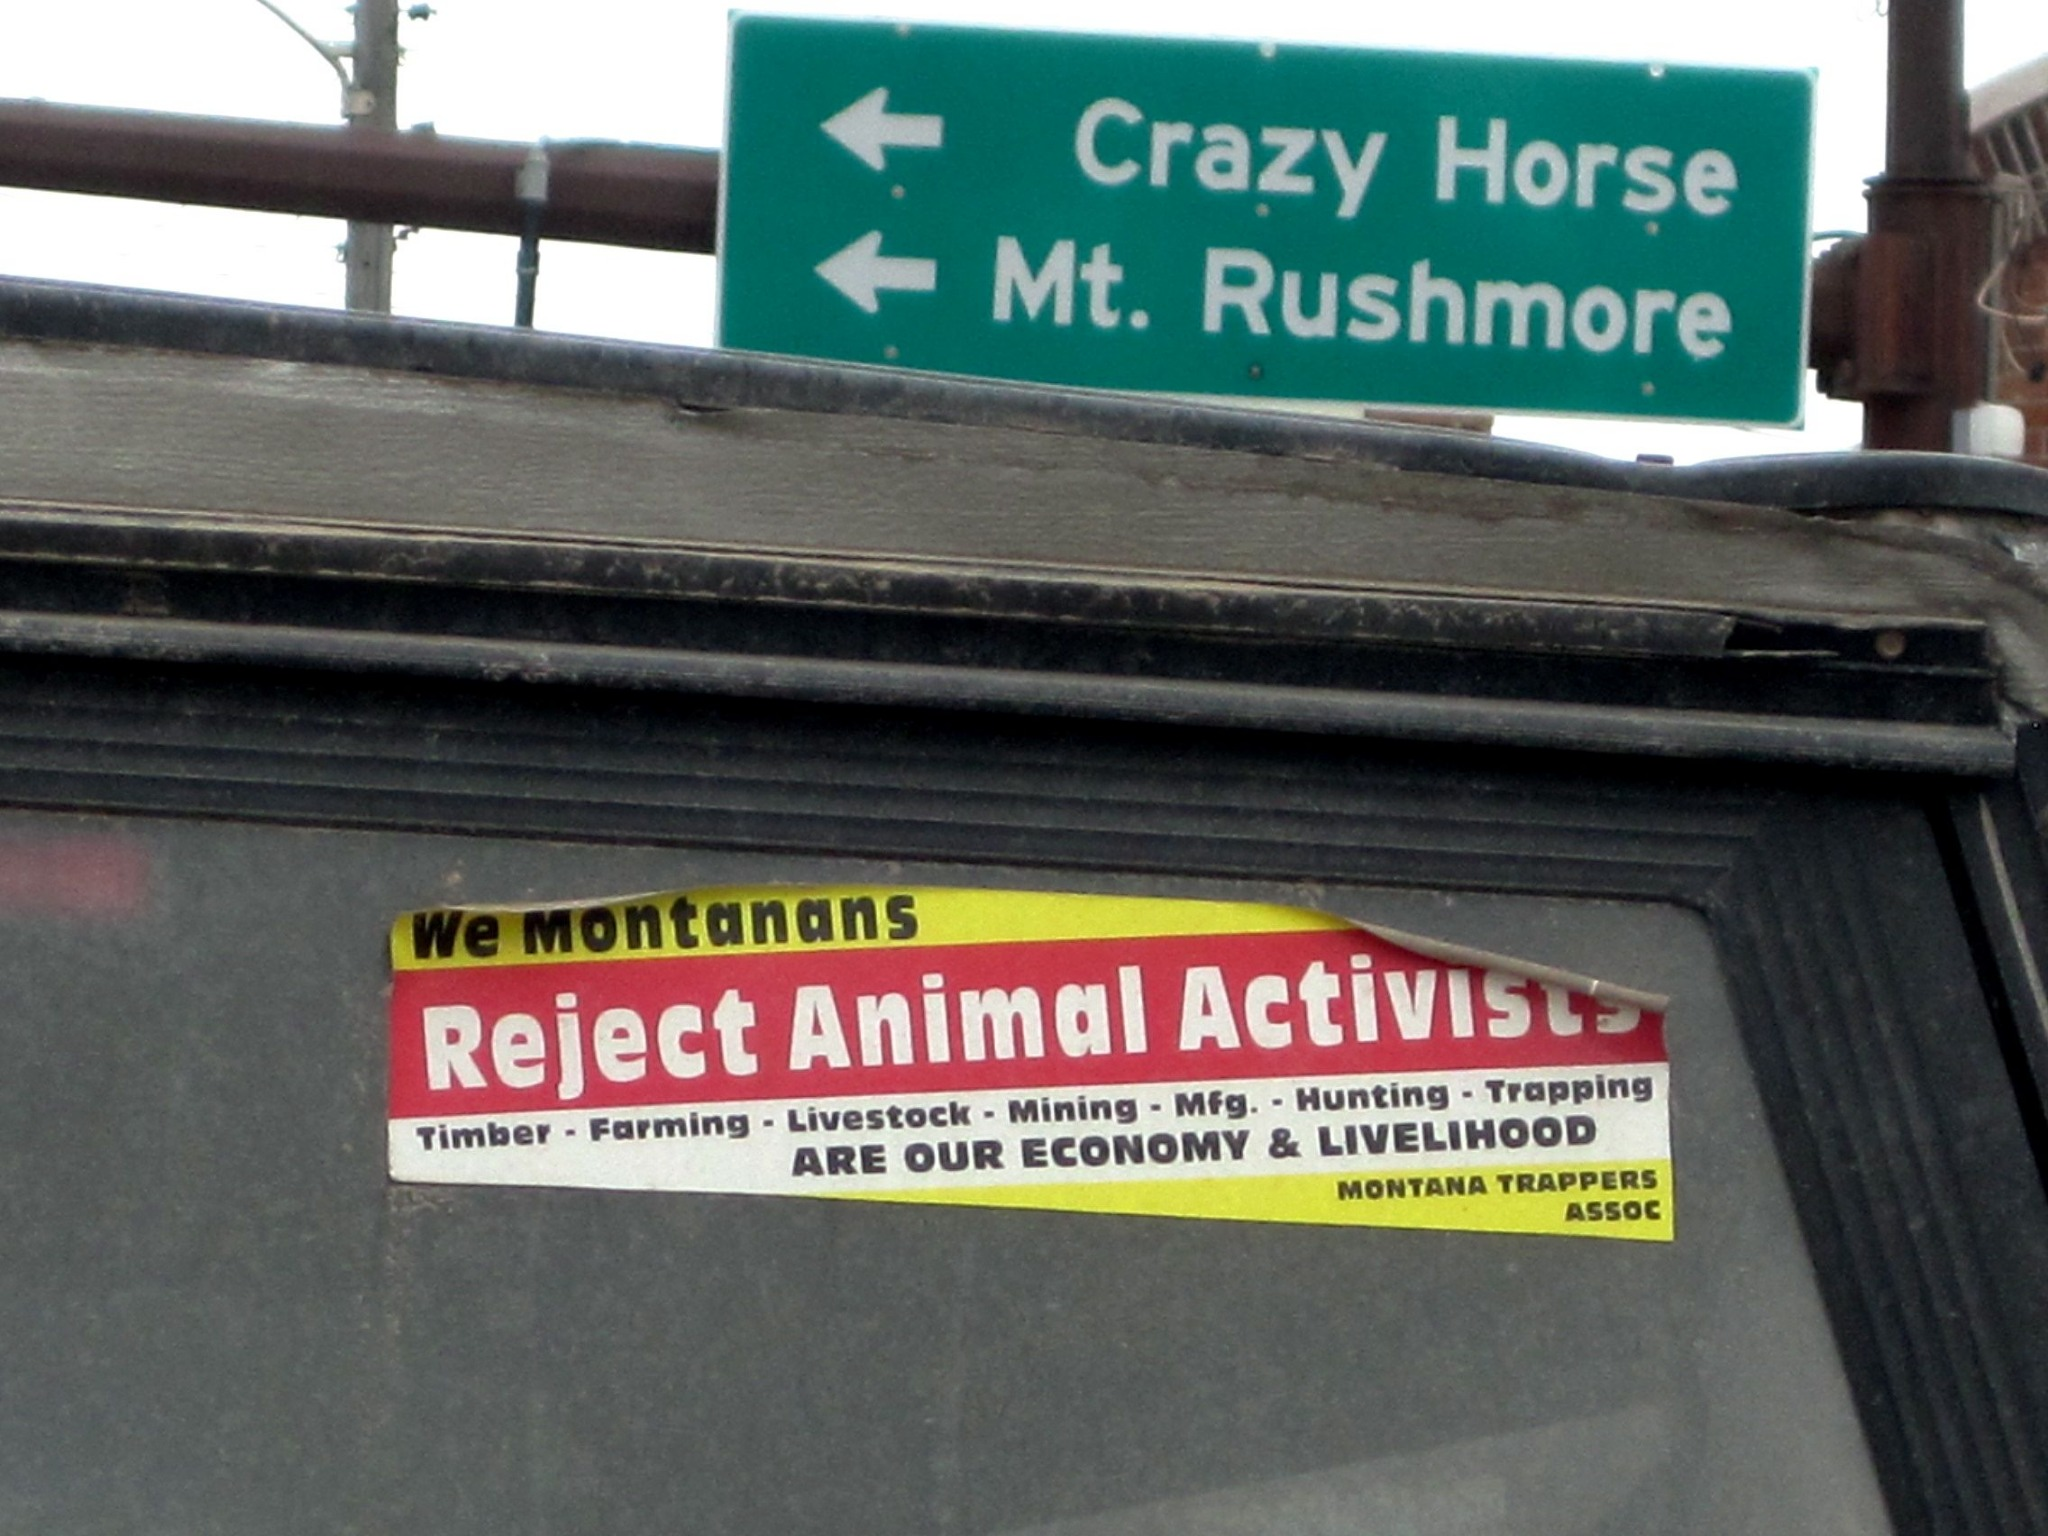 If animals have problems with our trappers' methods, then let them speak for themselves, you dumb hippies.